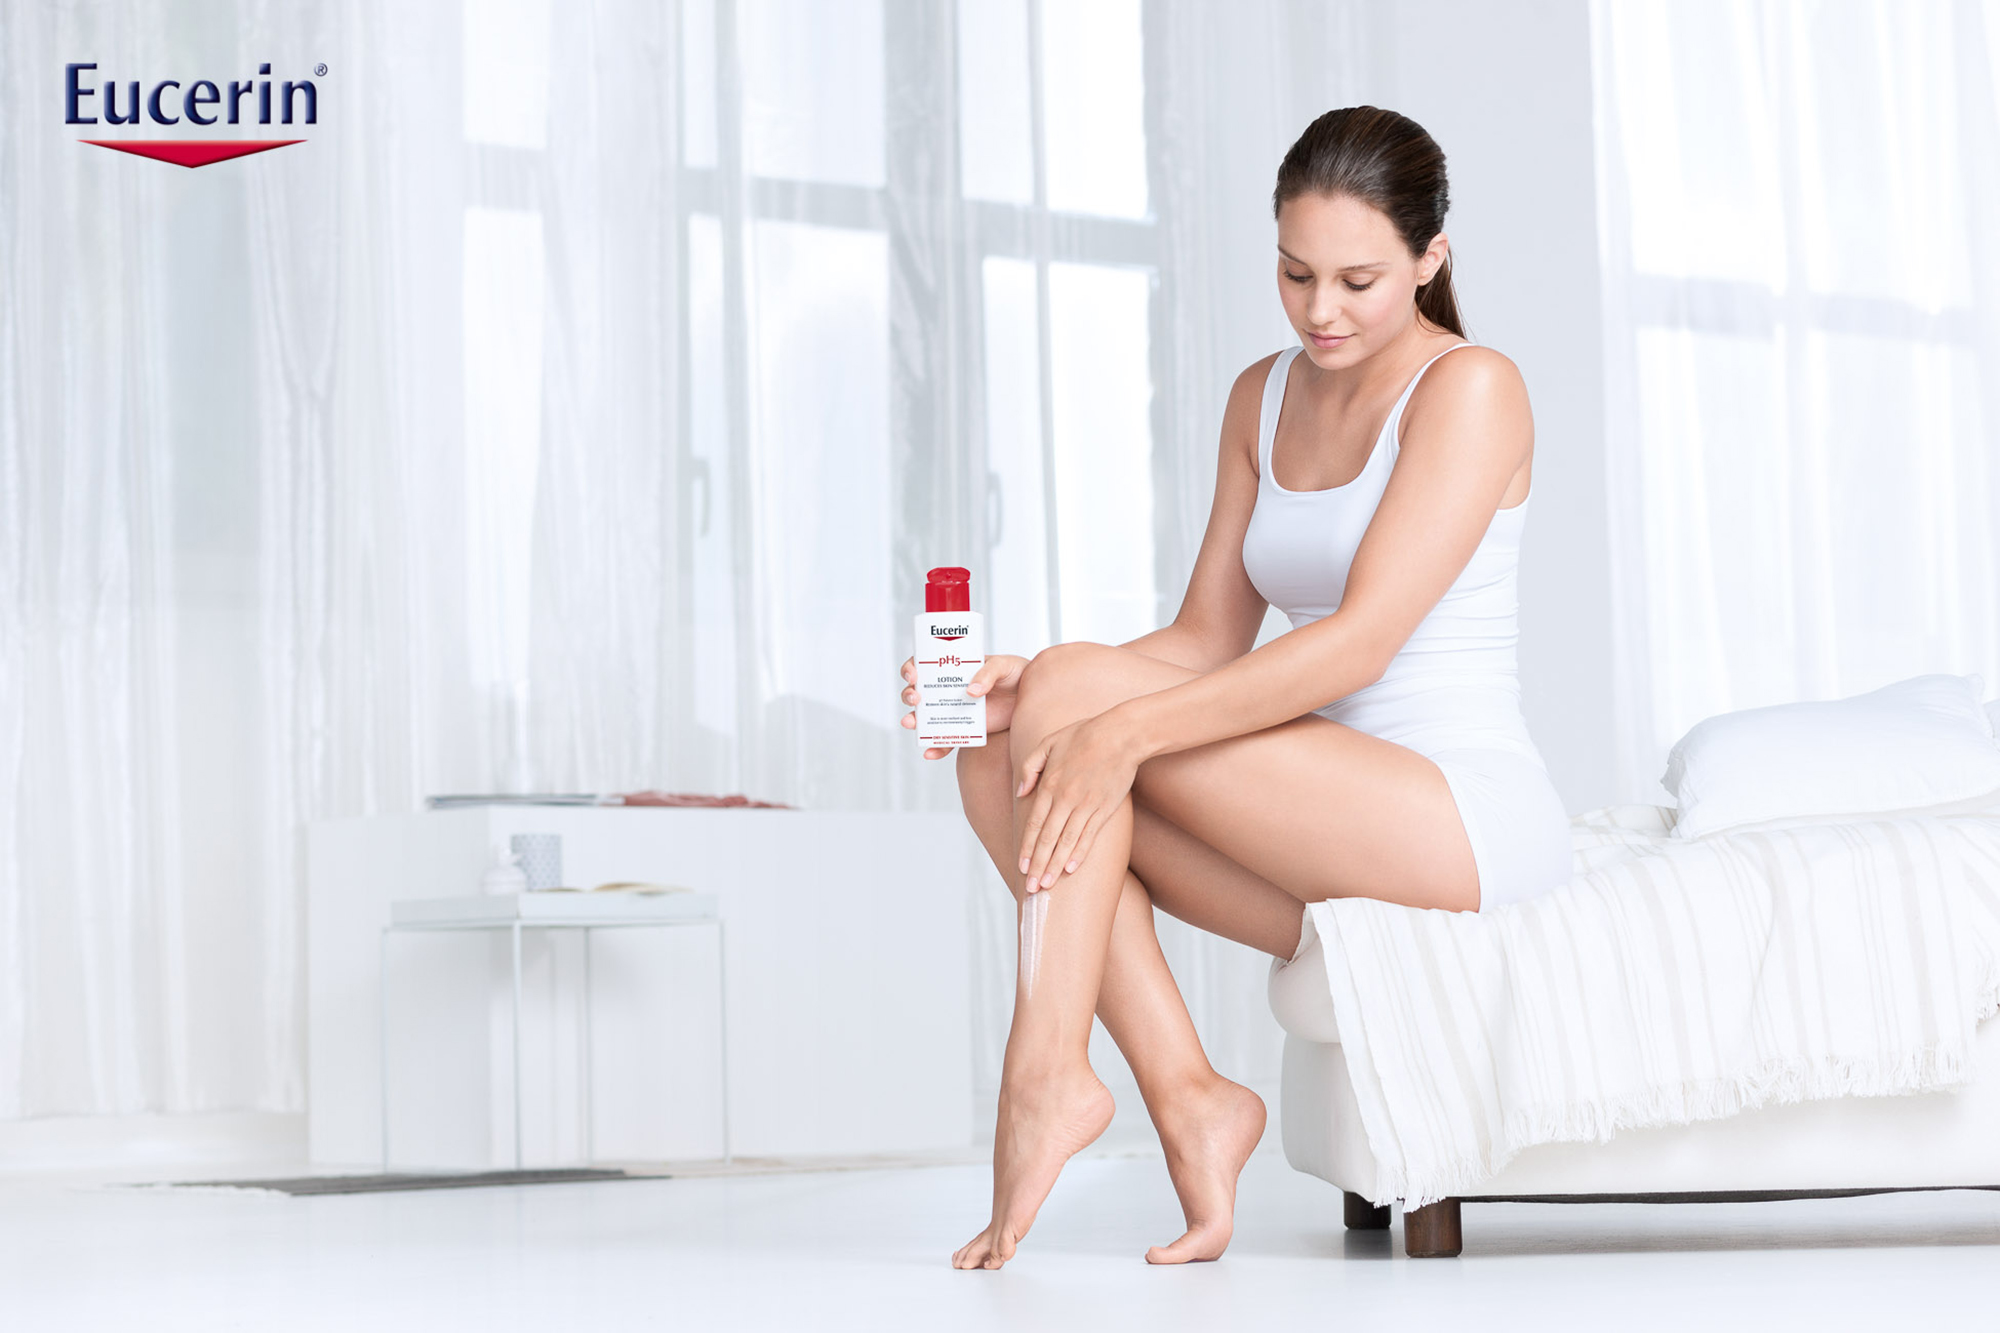 eucerin white shirt white room female mdoel creme leg